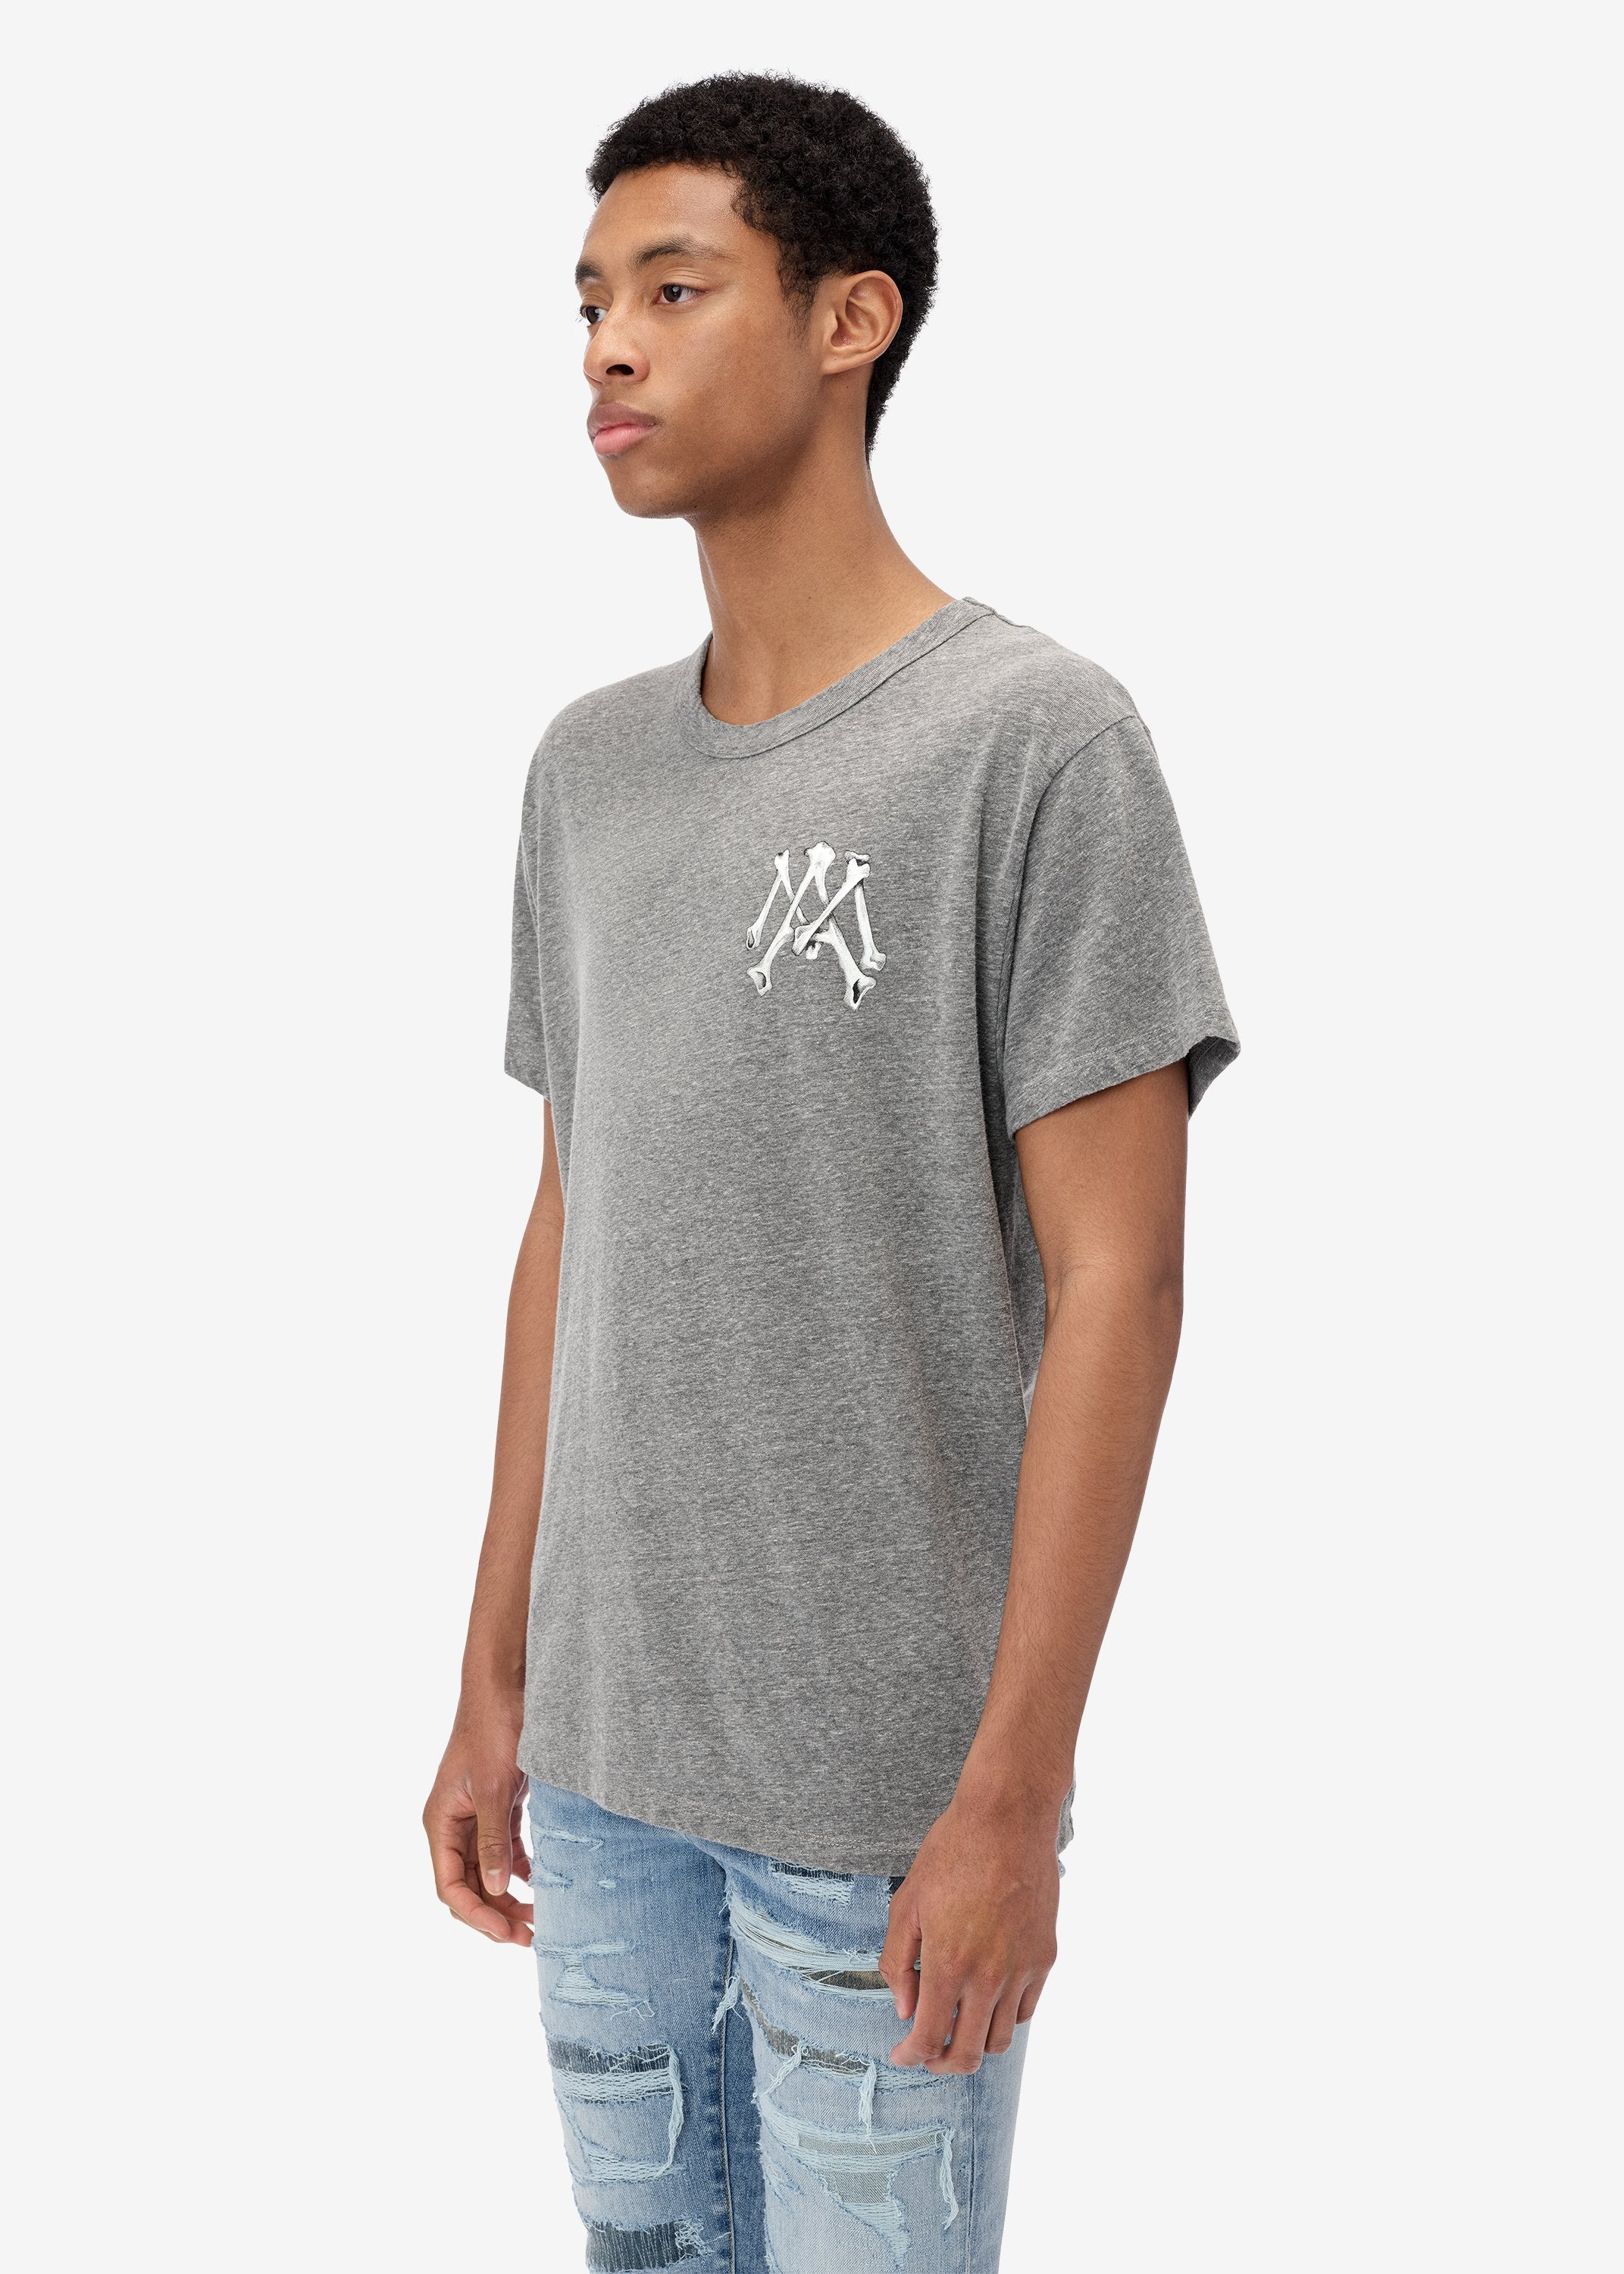 amiri-bones-m-a-tee-heather-grey-image-3